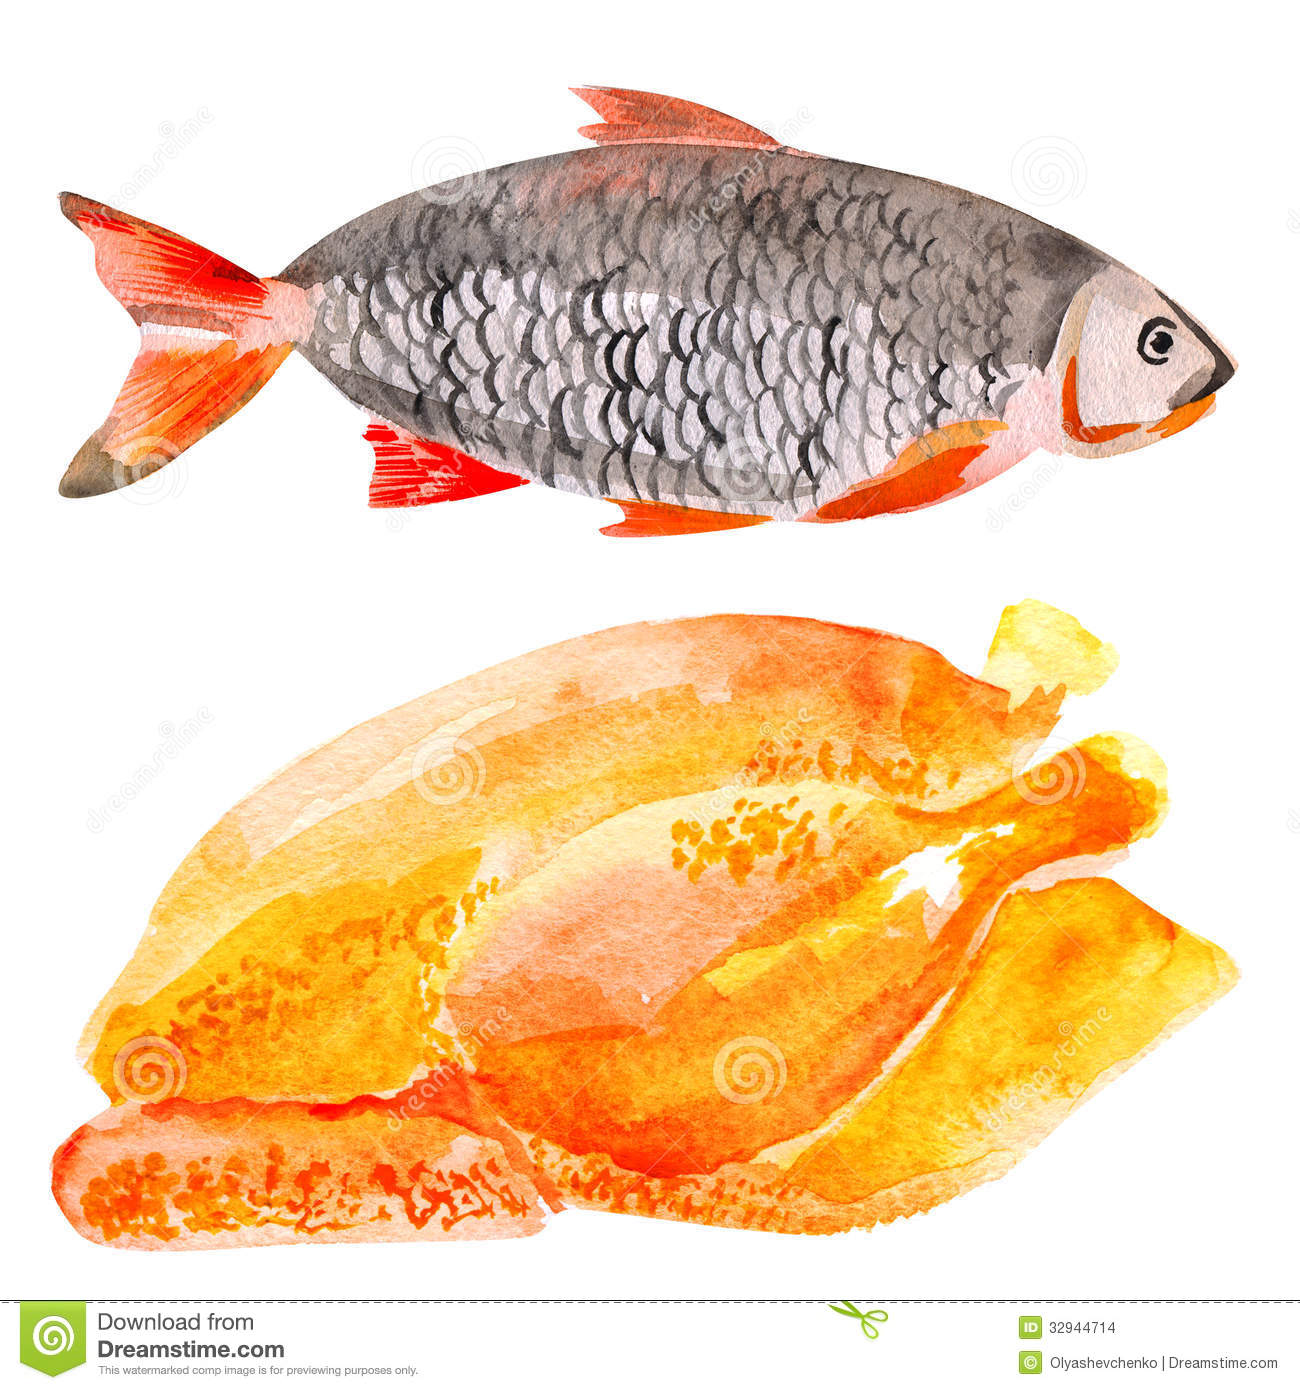 Meat chicken fish clipart clipart suggest for Fish and chicken